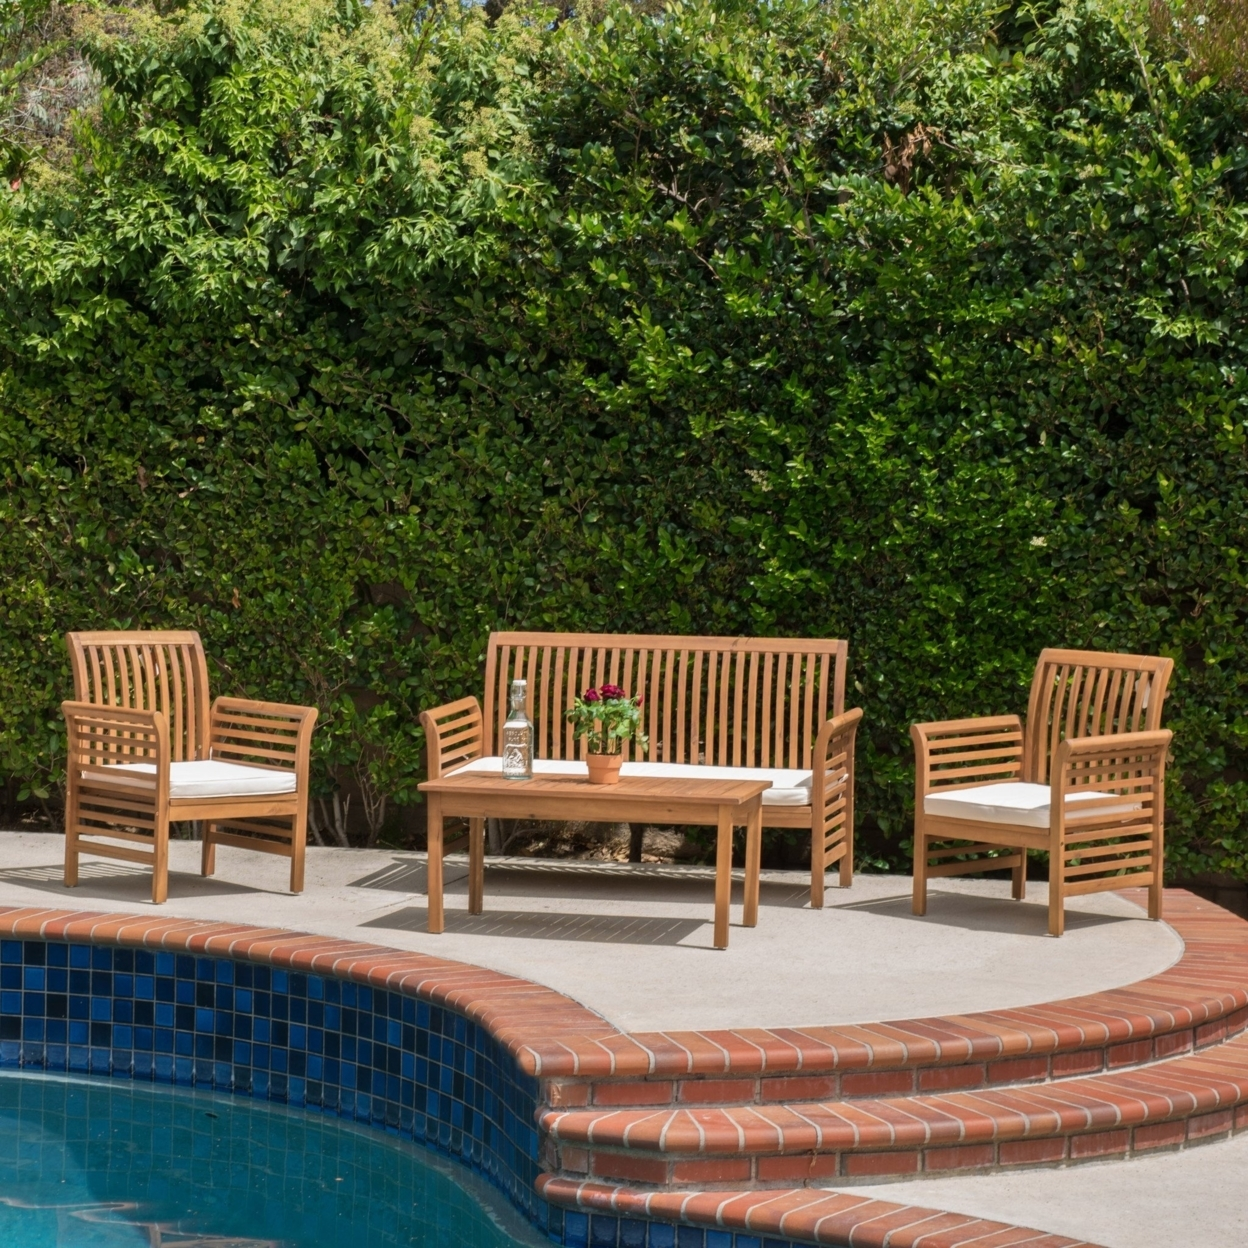 Mondes 4-piece Outdoor Seating Set